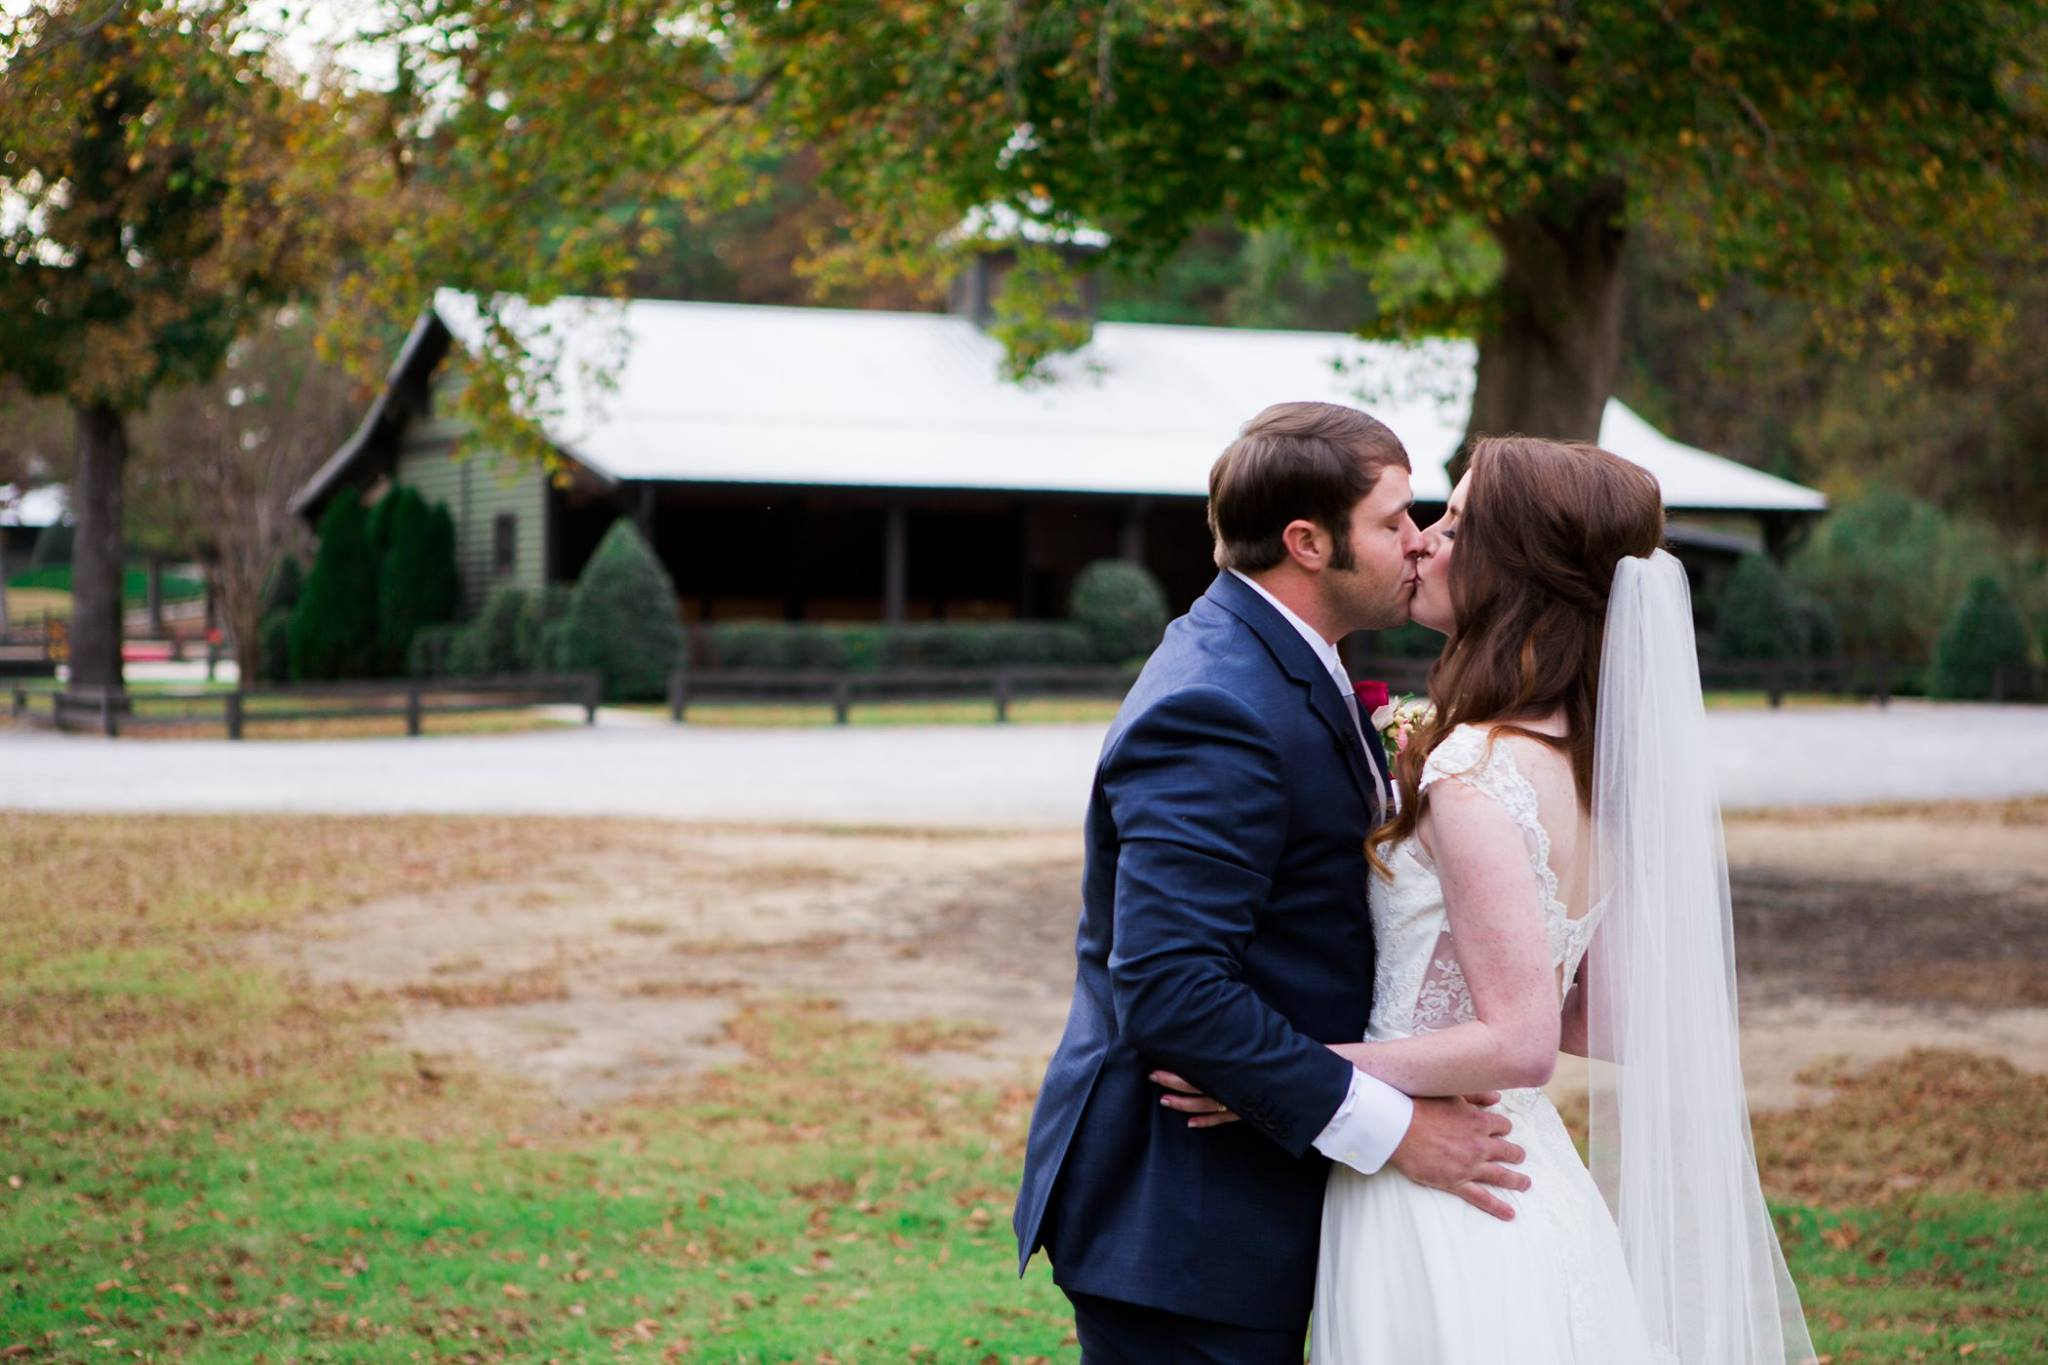 Rustic Wedding Chic: Katie and Hunter